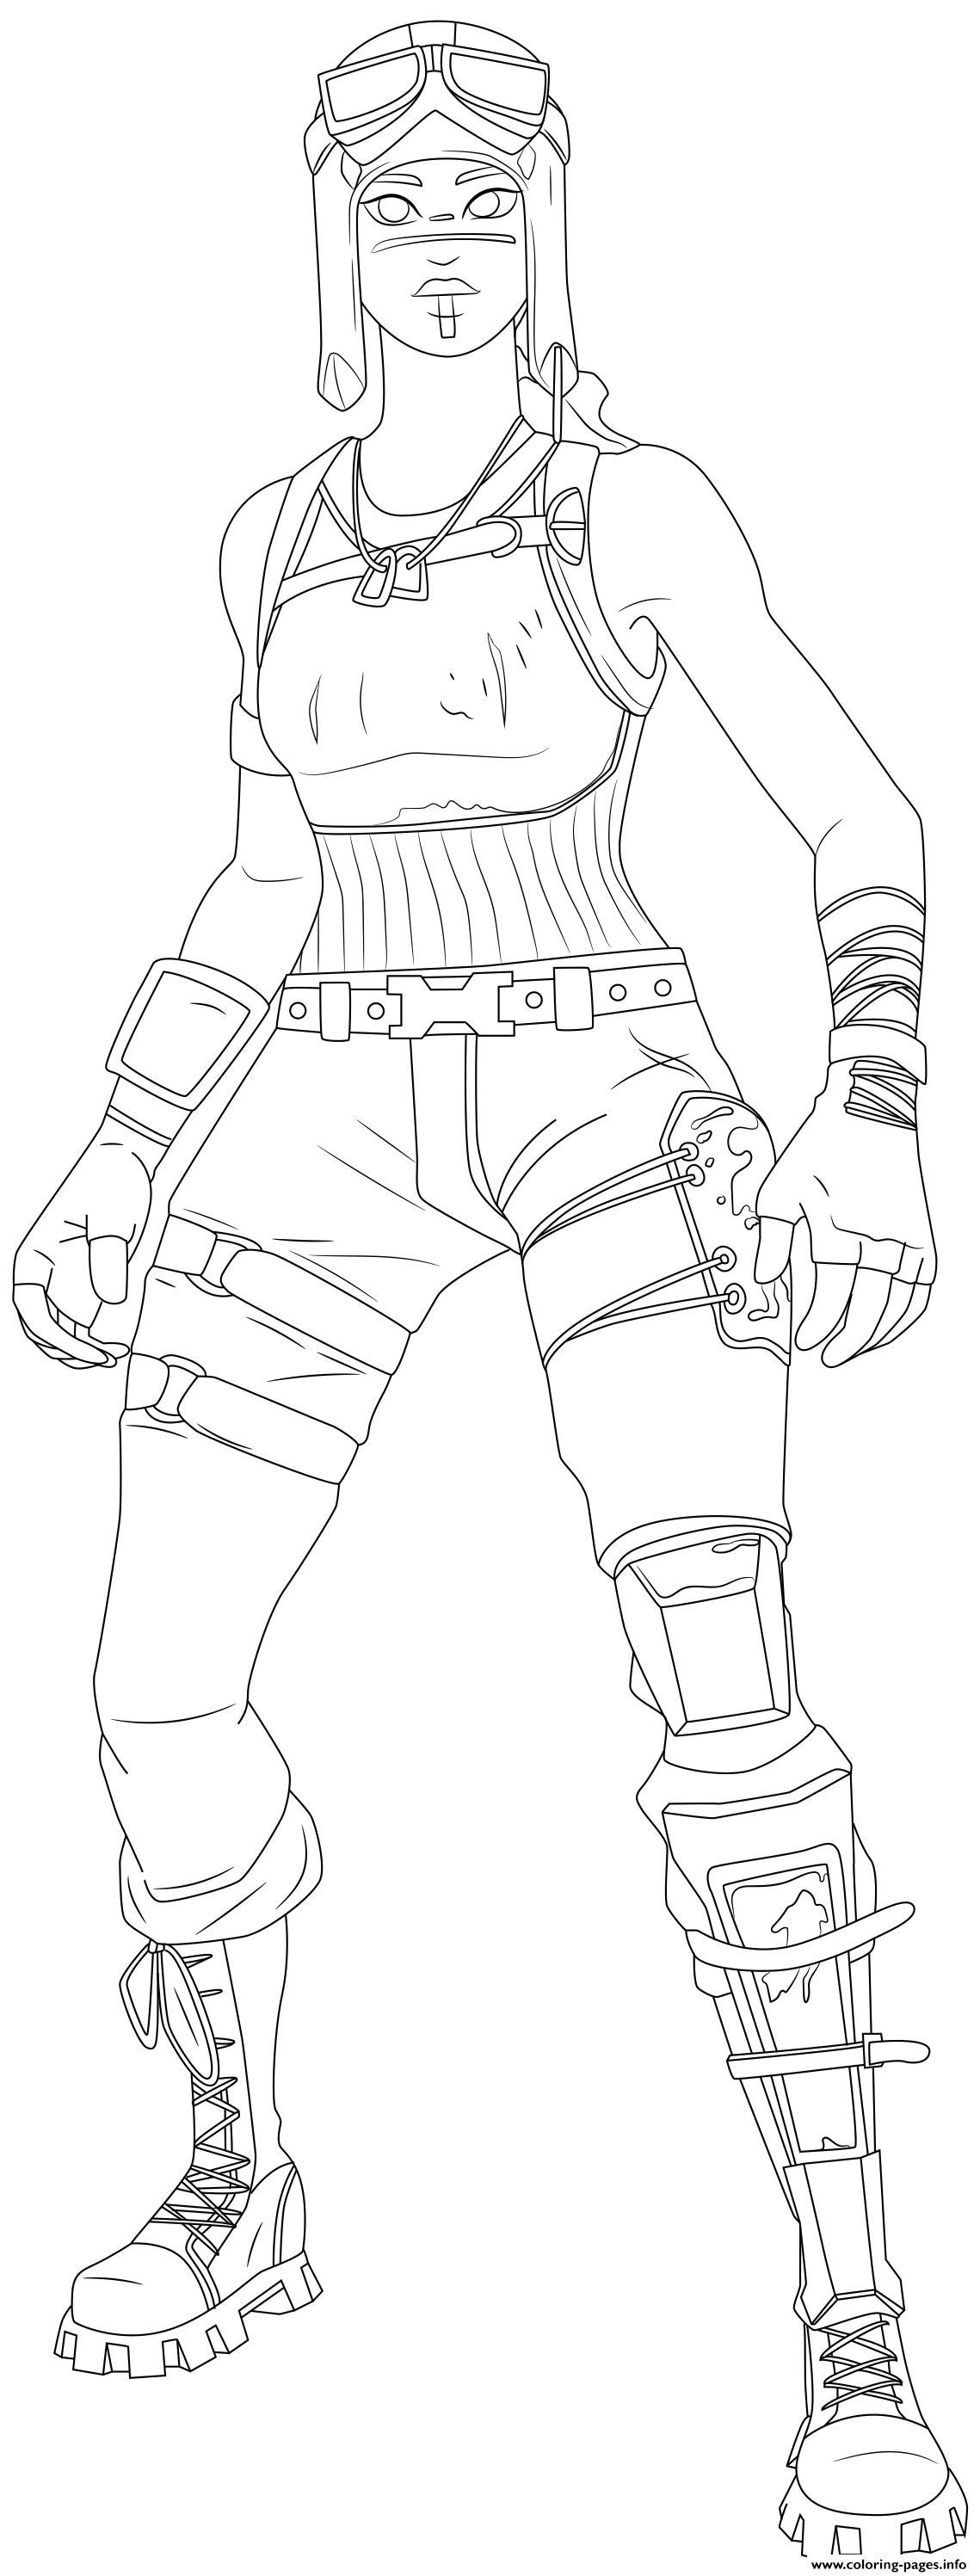 16 Free Printable Fortnite Coloring Pages - 1NZA   2994x1139